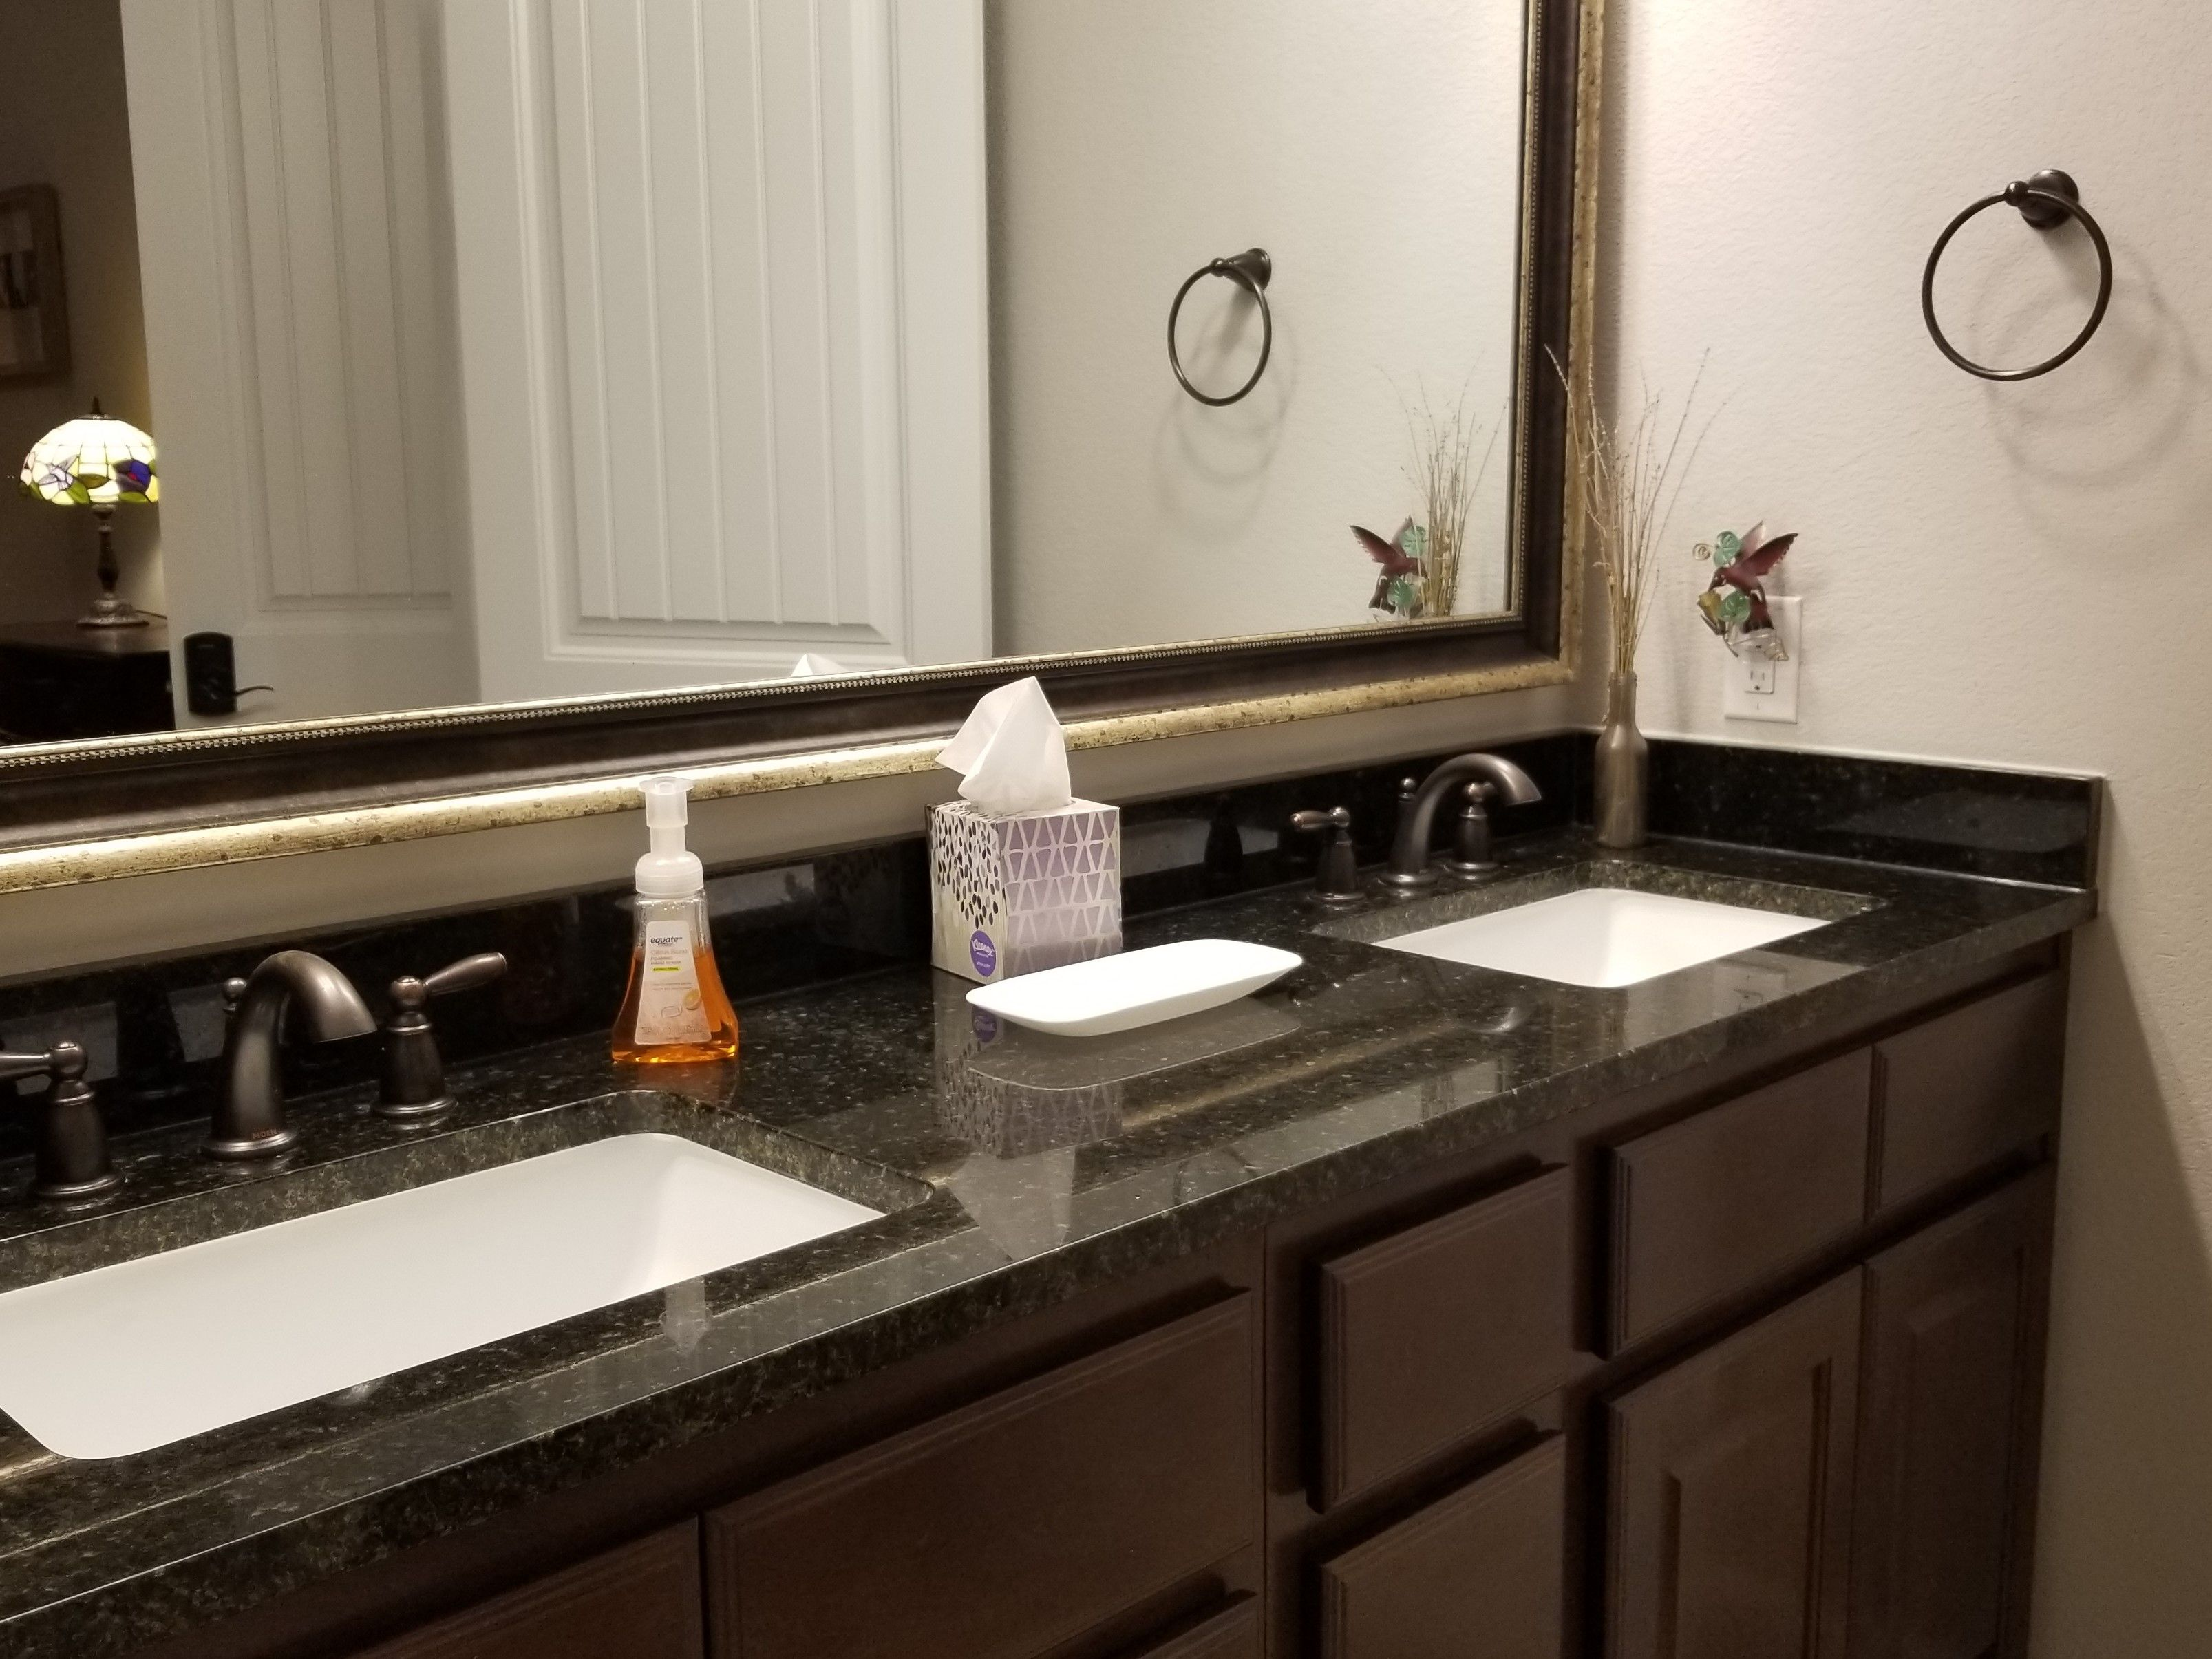 5-Hummingbird Bathroom Vanity.jpg